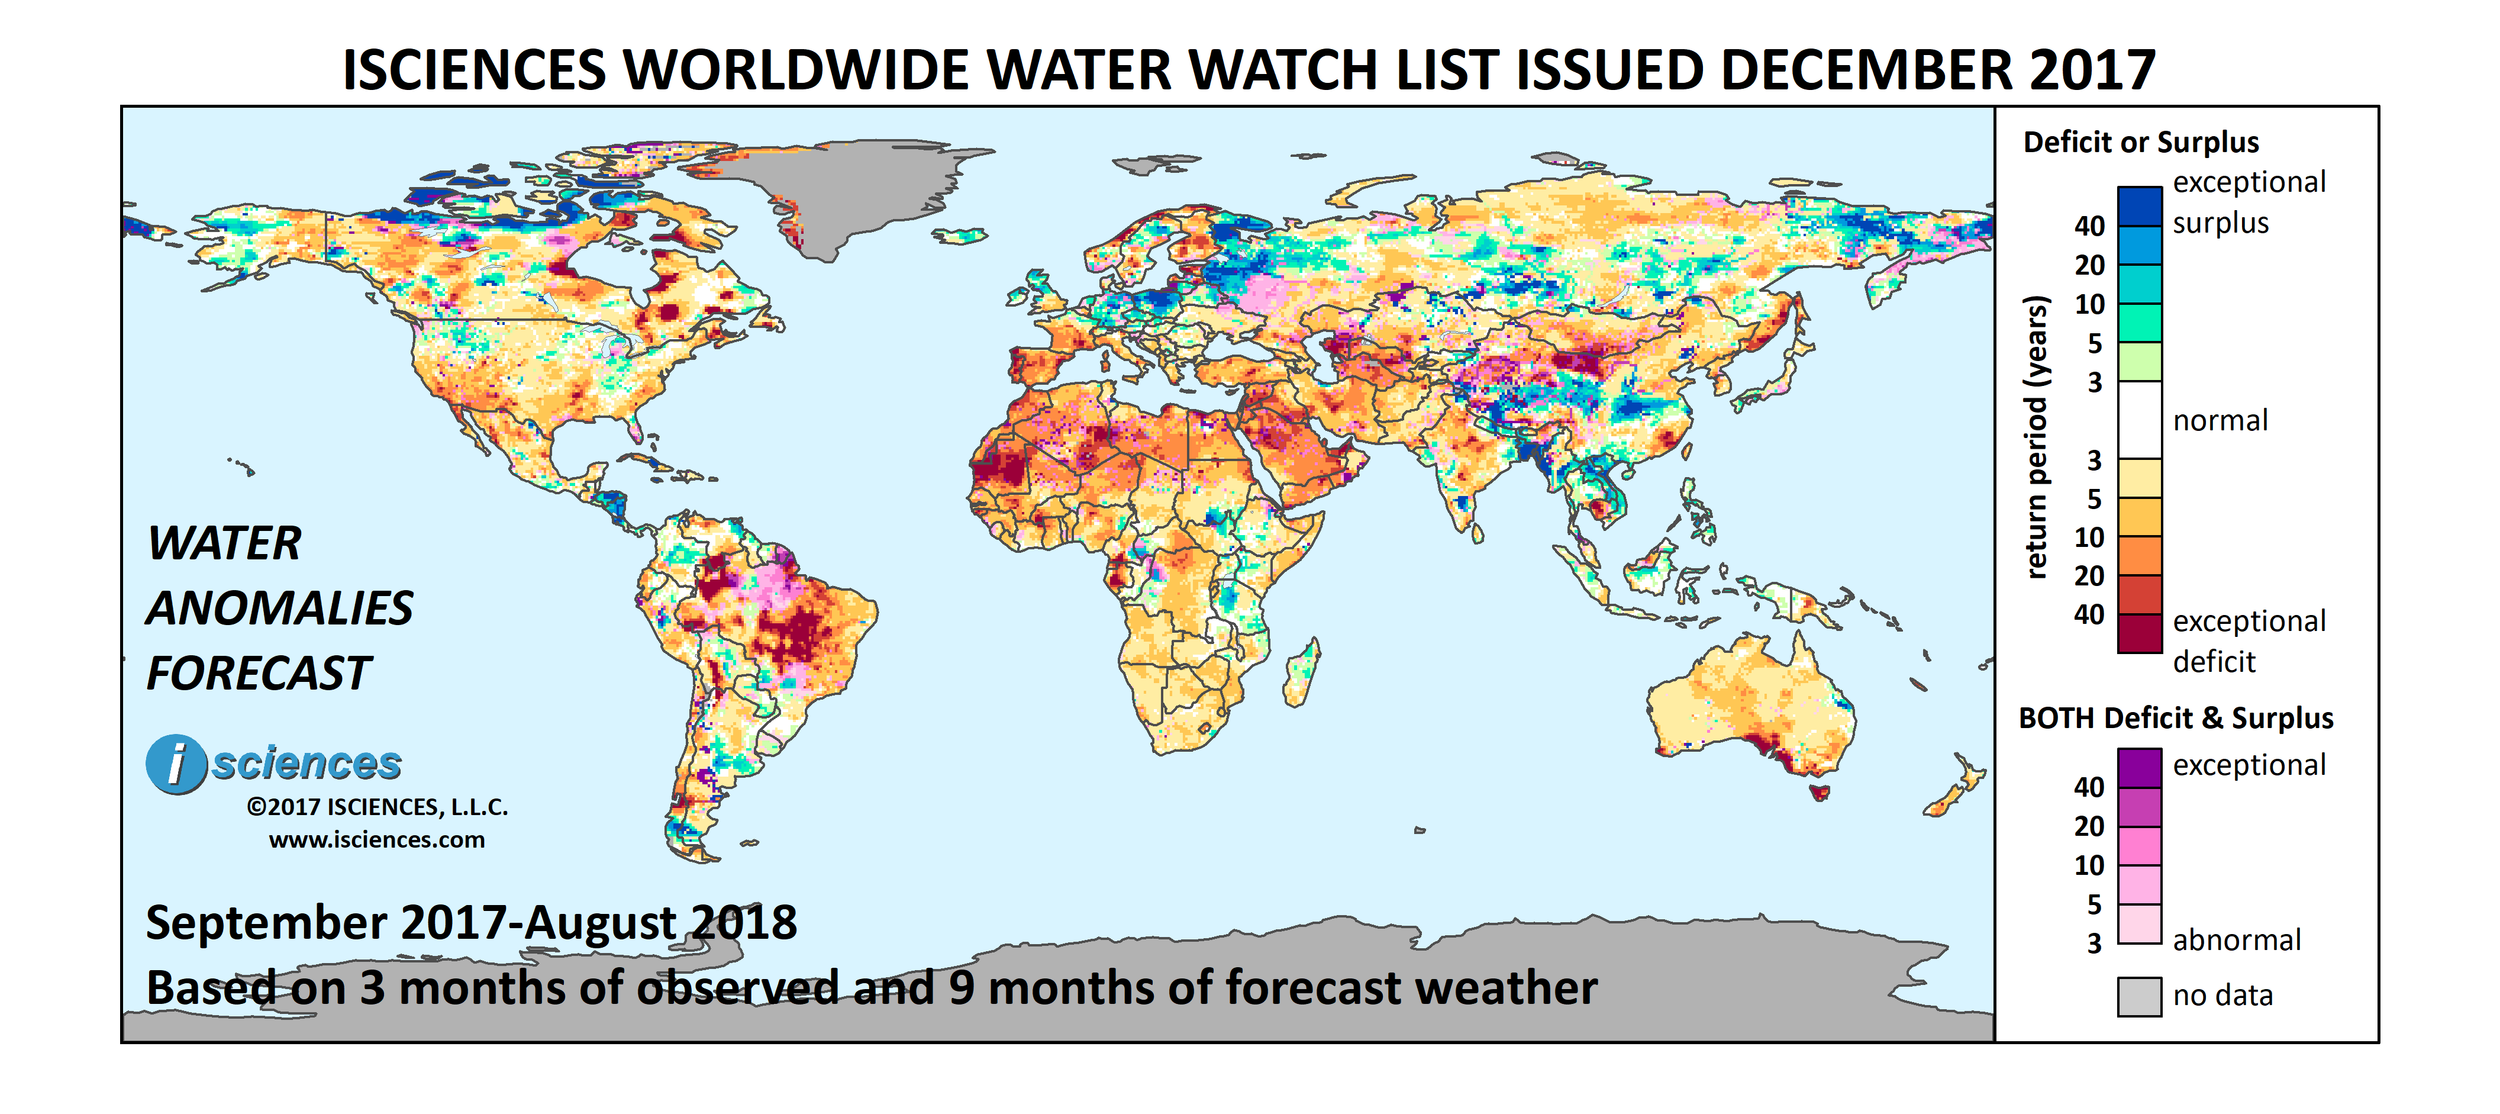 ISciences_Worldwide_Water_Watch_List_Dec_2017.png